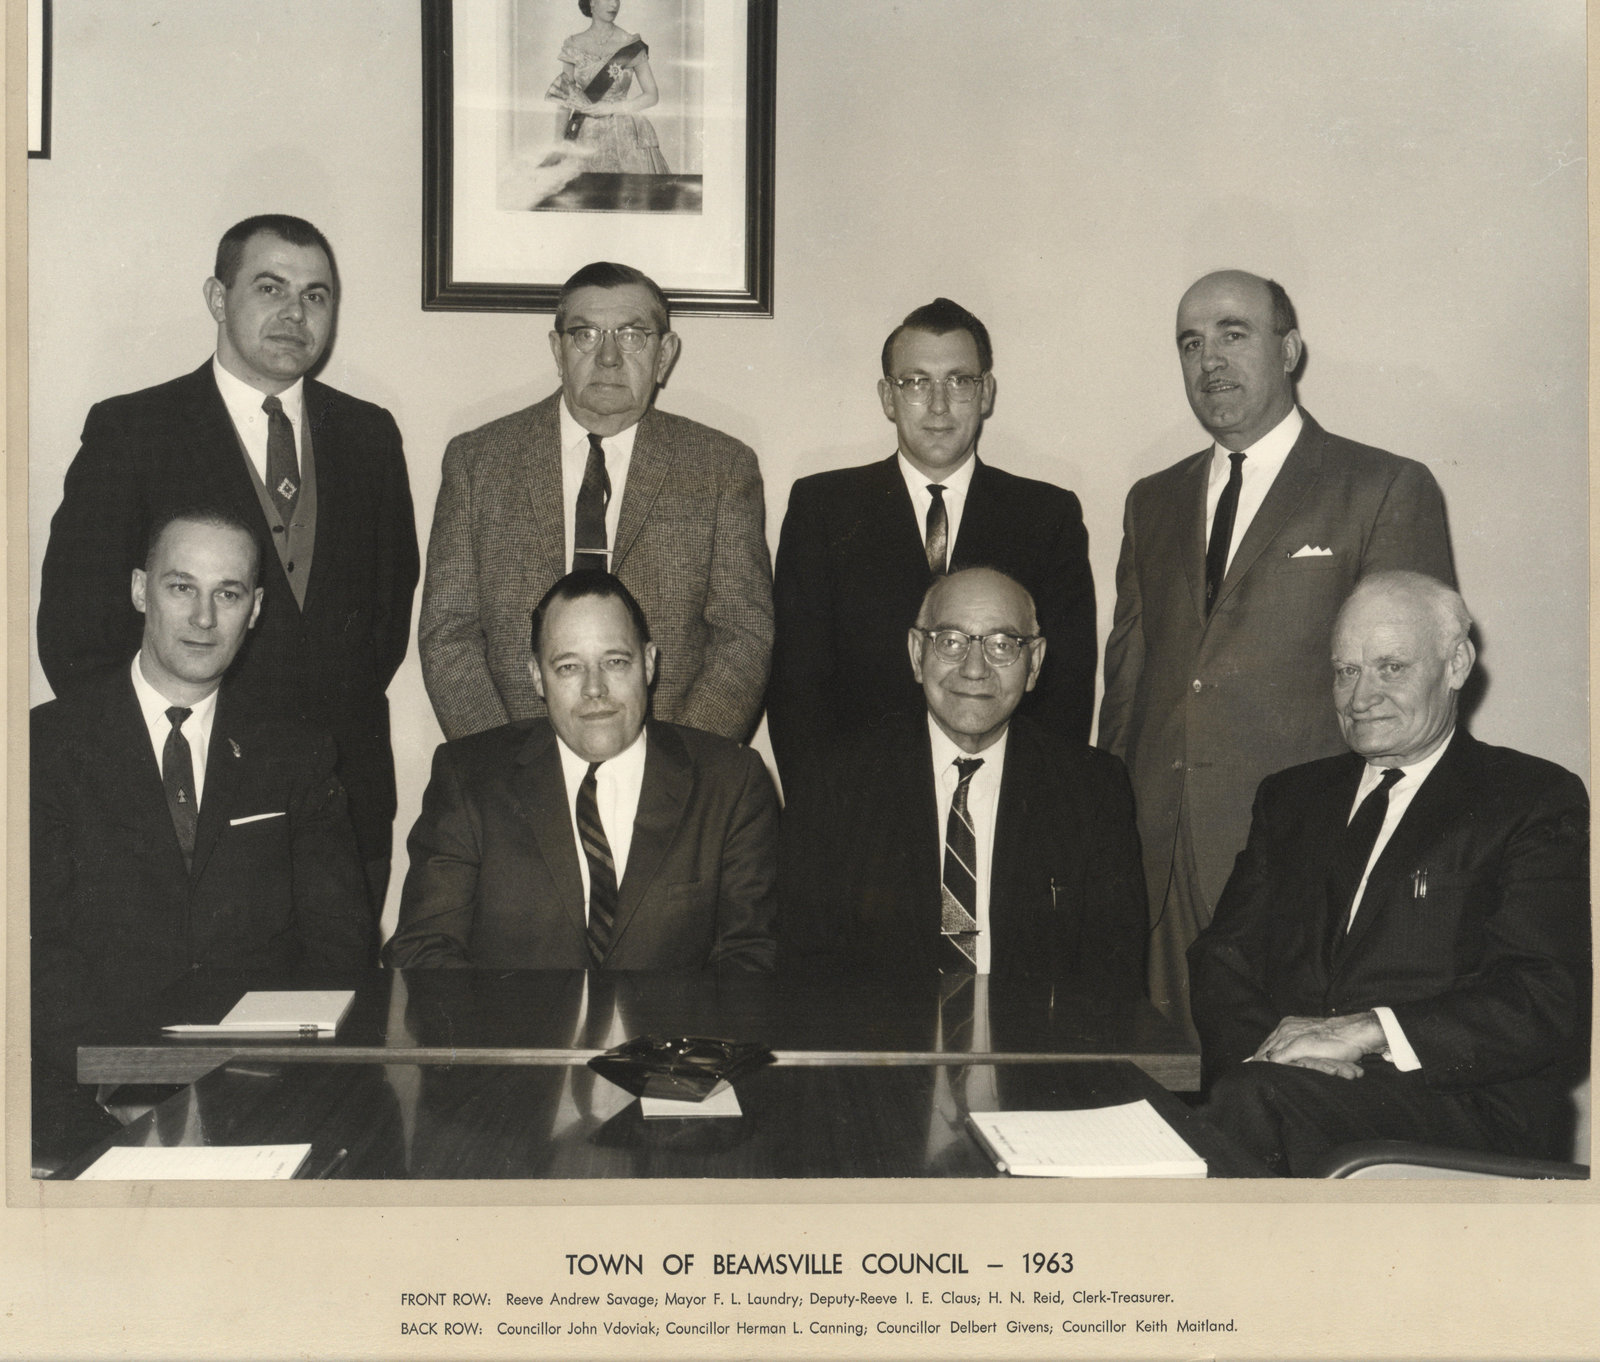 Town of Beamsville Council - 1963